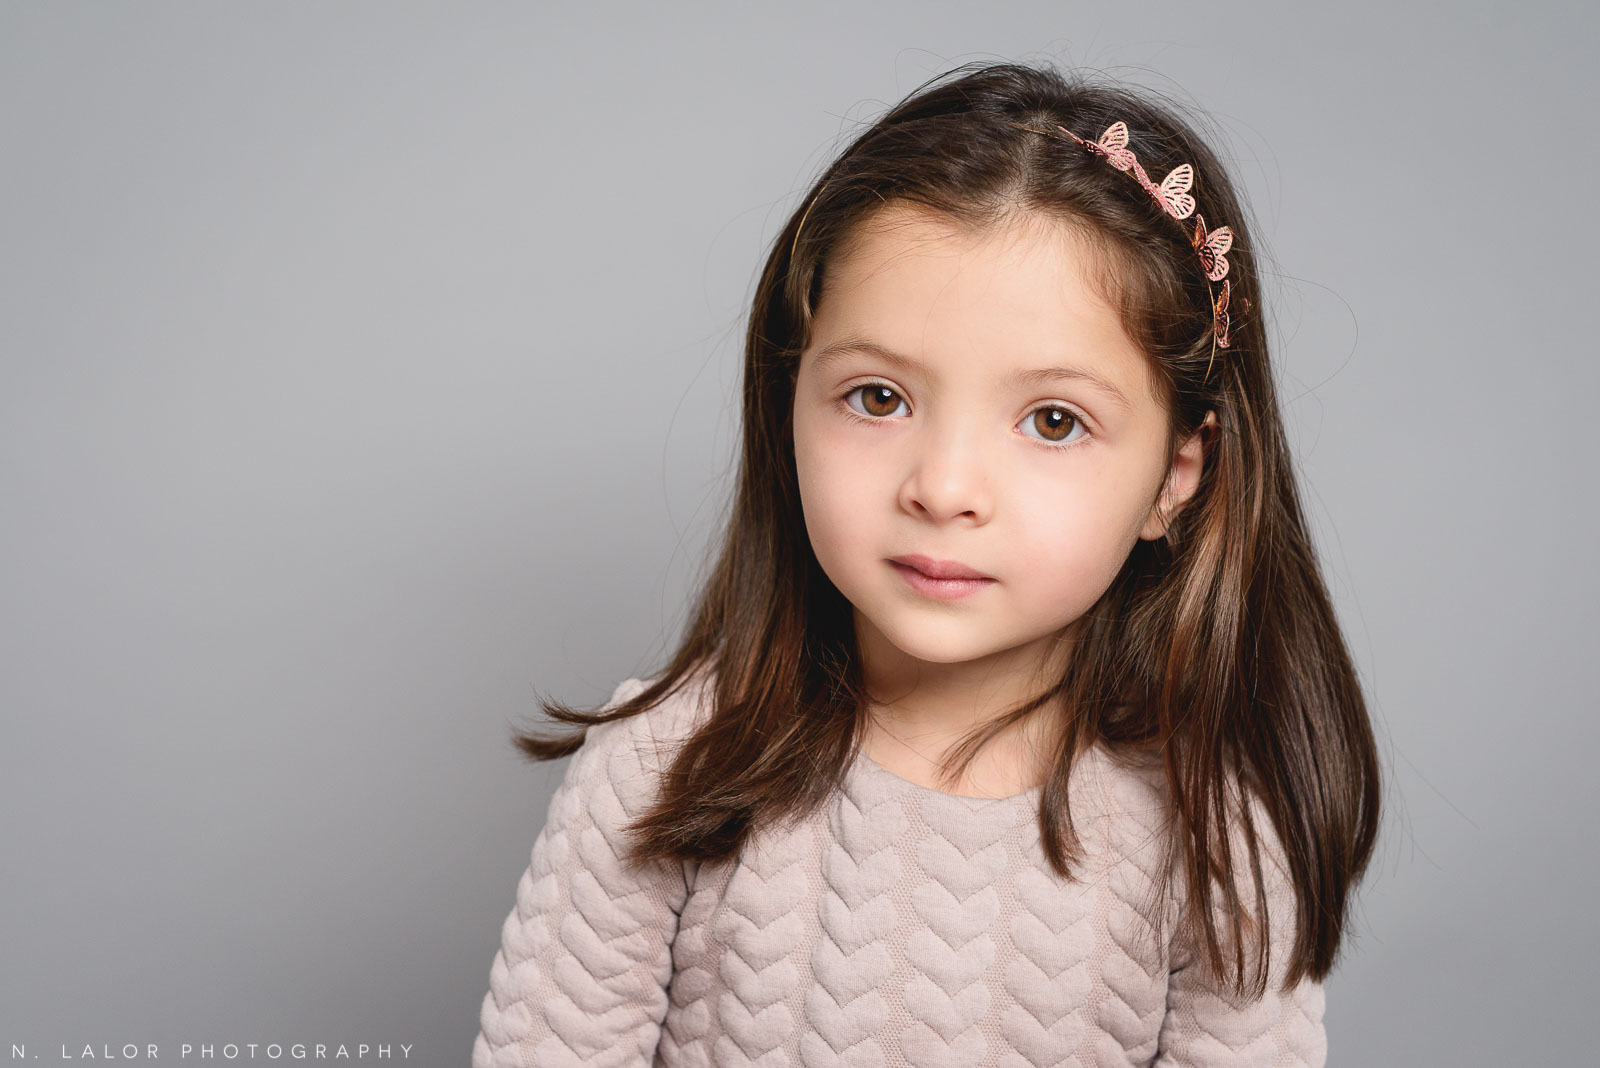 Non-smiling photo of a little girl. Studio portrait by N. Lalor Photography in Greenwich, Connecticut.